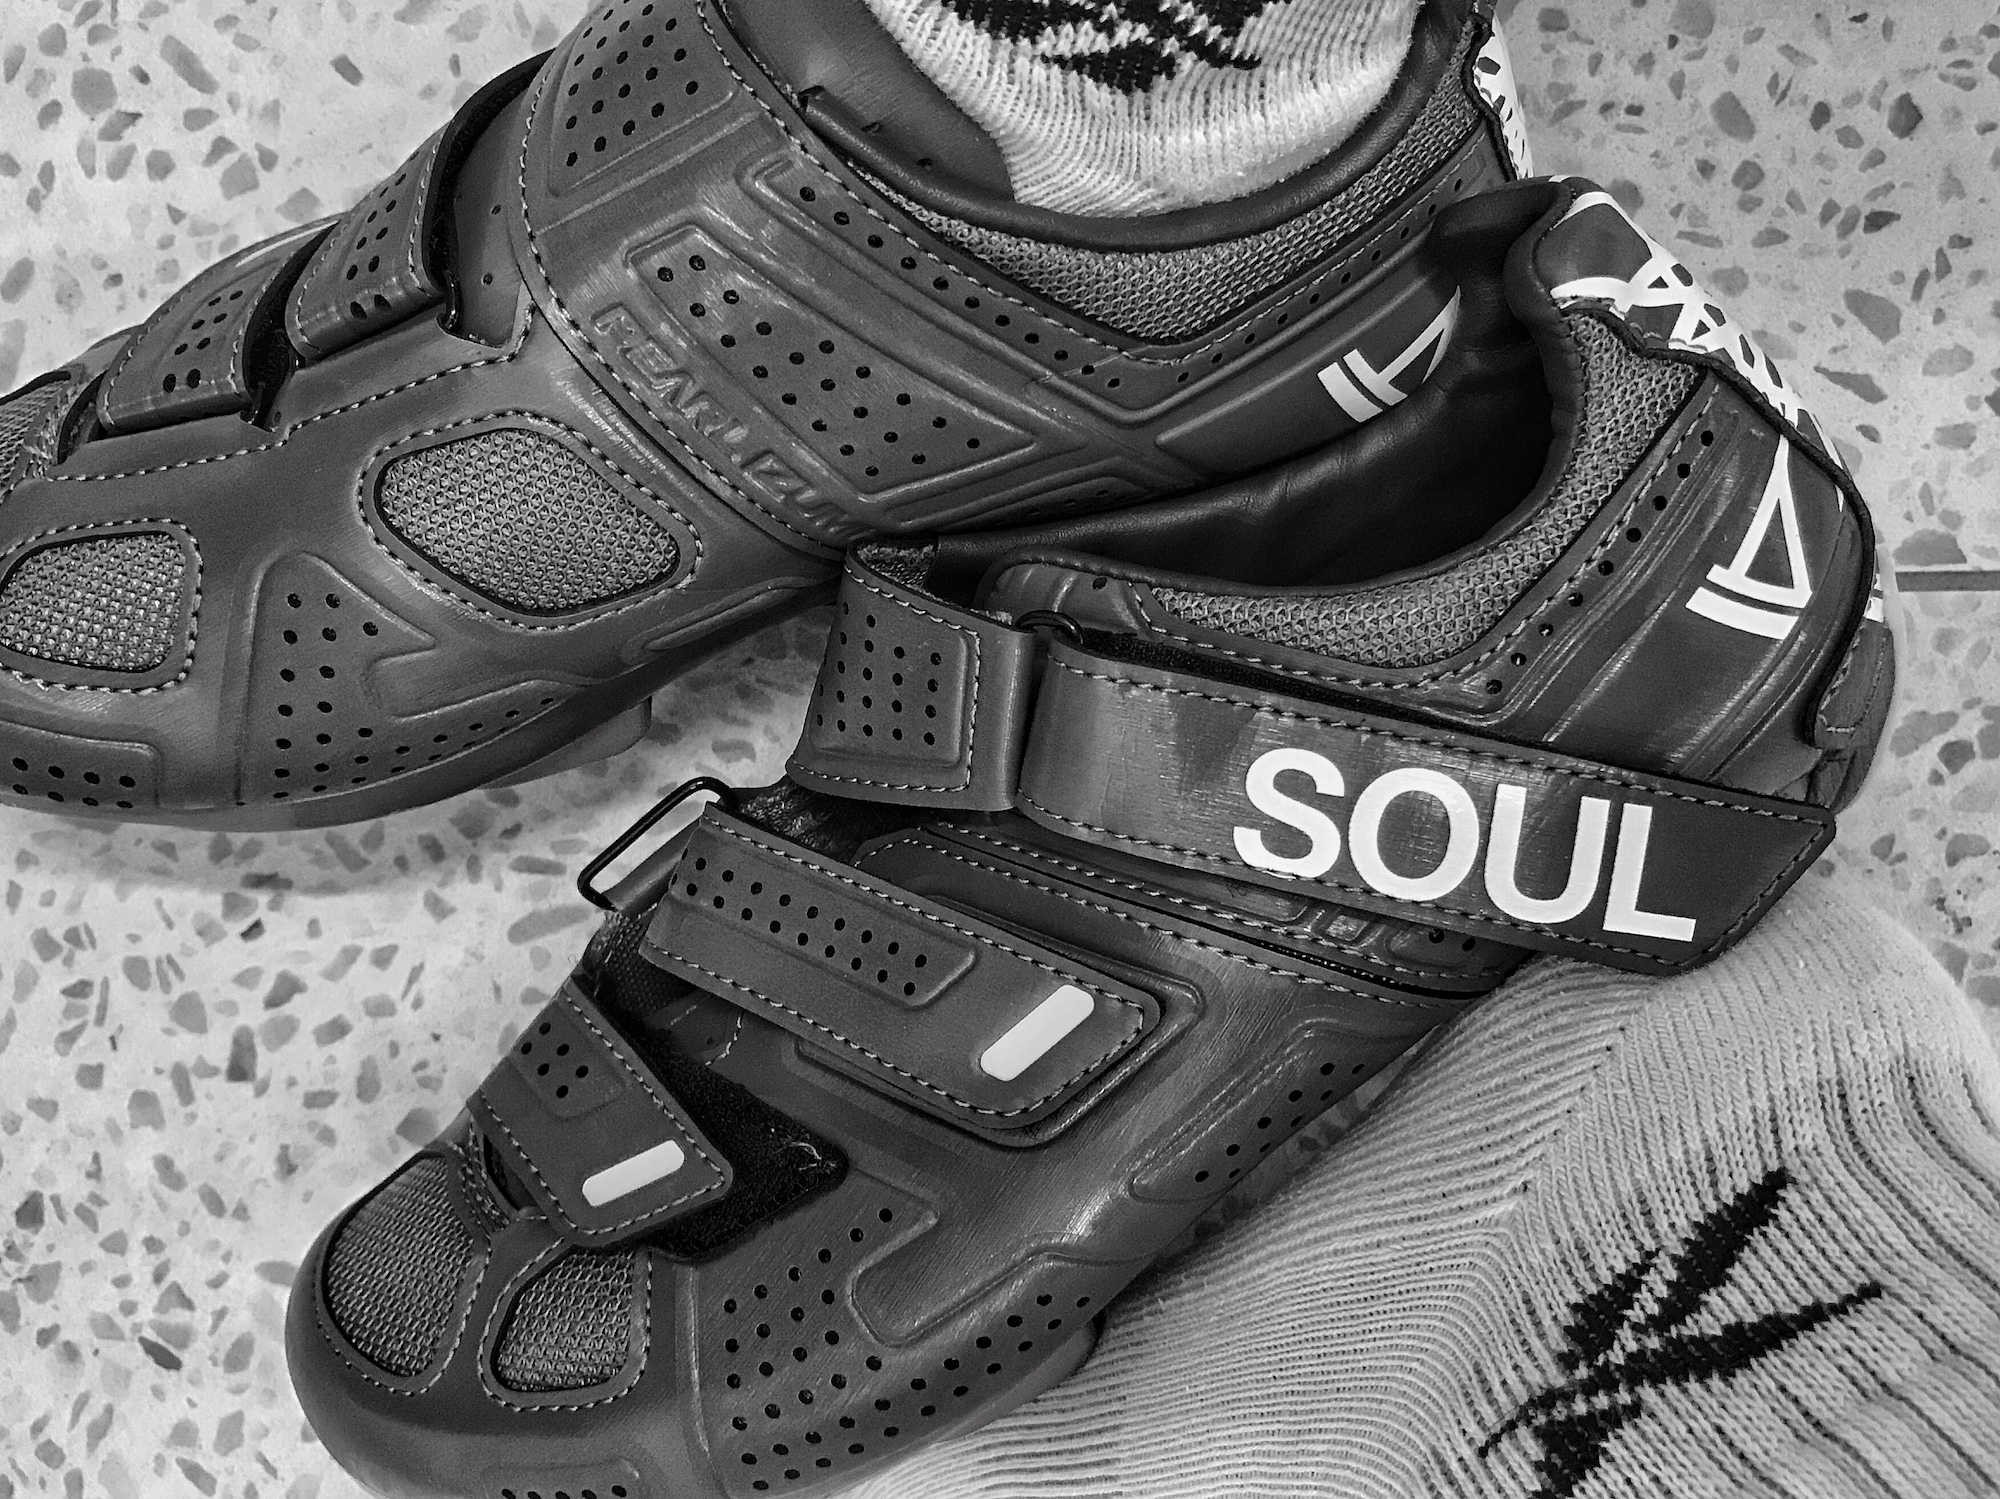 Soulcycle Shoes.jpg